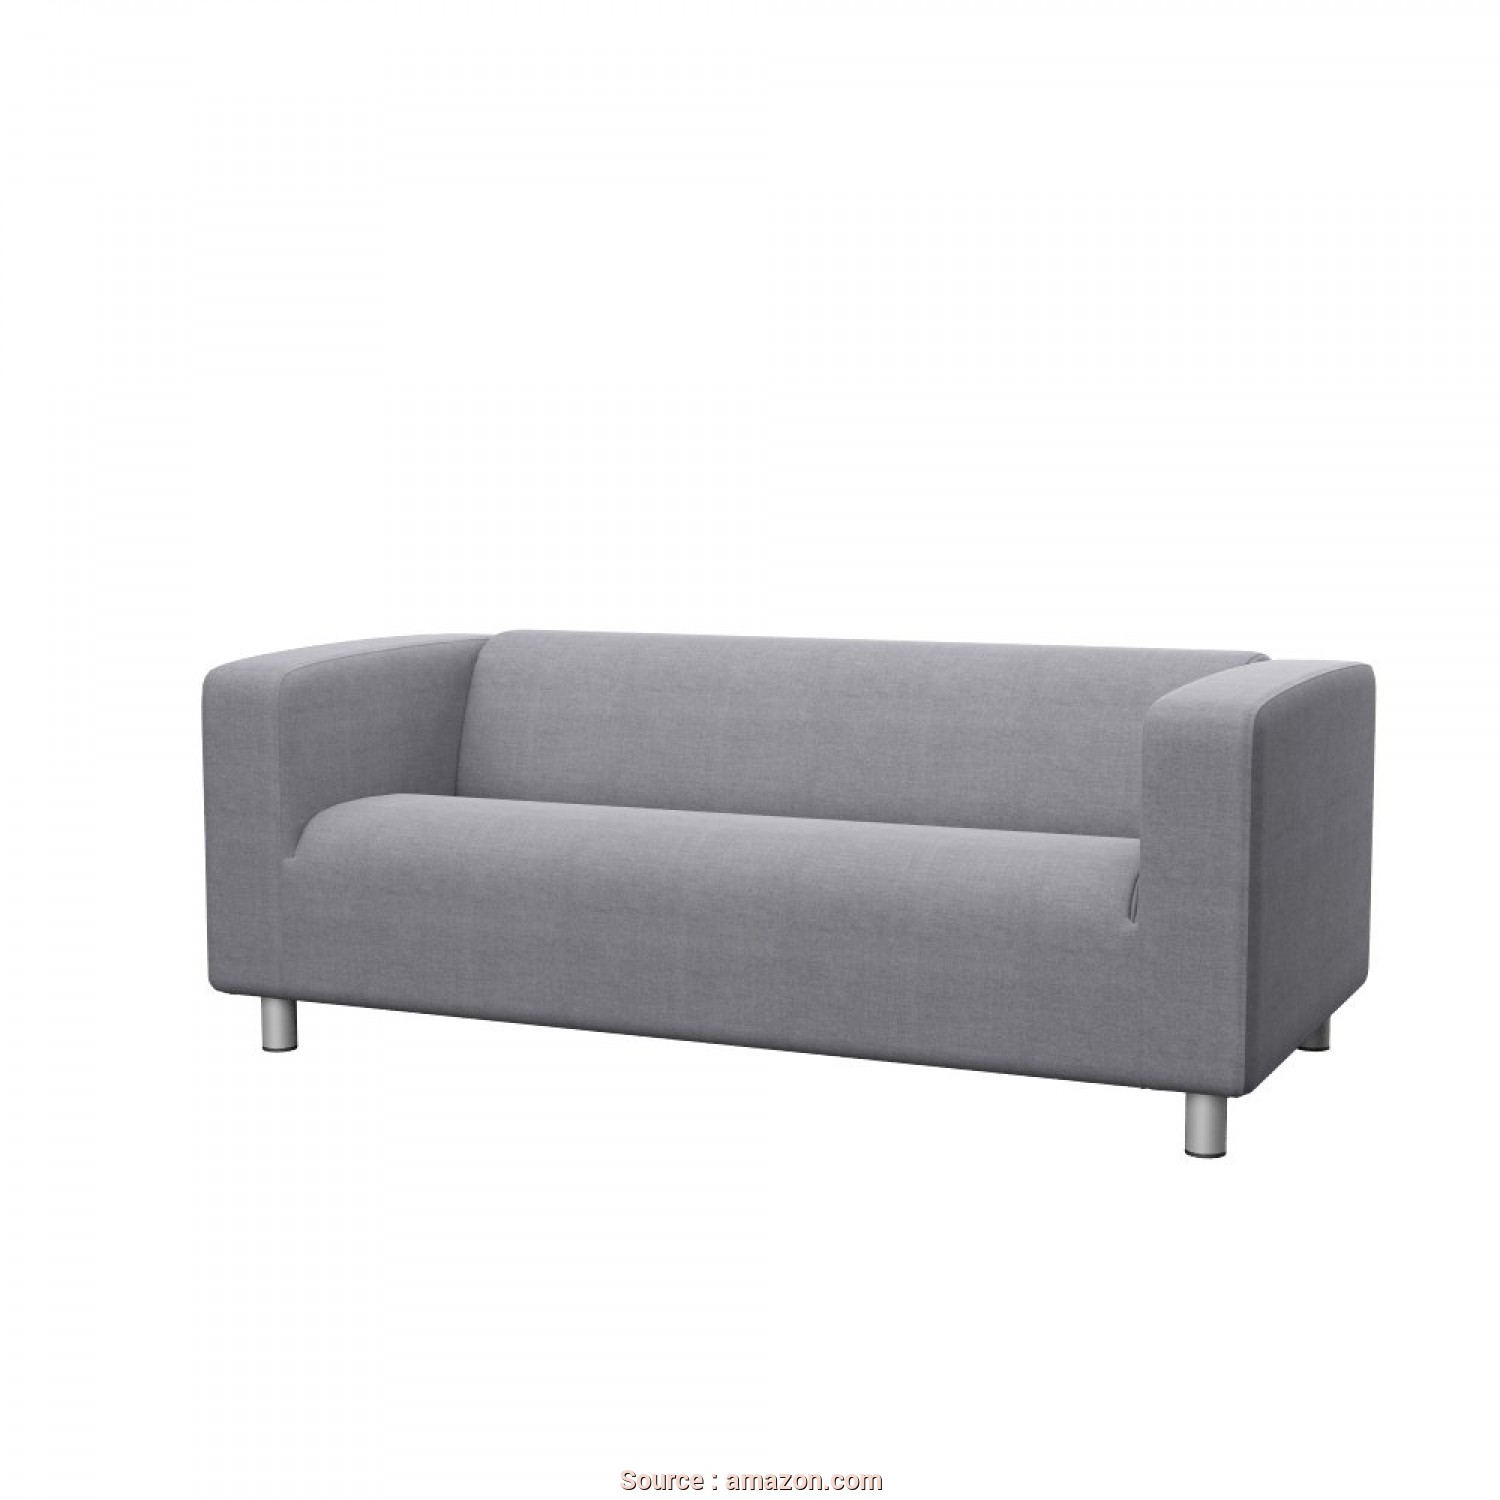 Ikea Klippan Sofa Uae, Loveable Amazon.Com: Soferia, Replacement Cover, IKEA KLIPPAN 2-Seat Sofa, Elegance Light Grey: Home & Kitchen